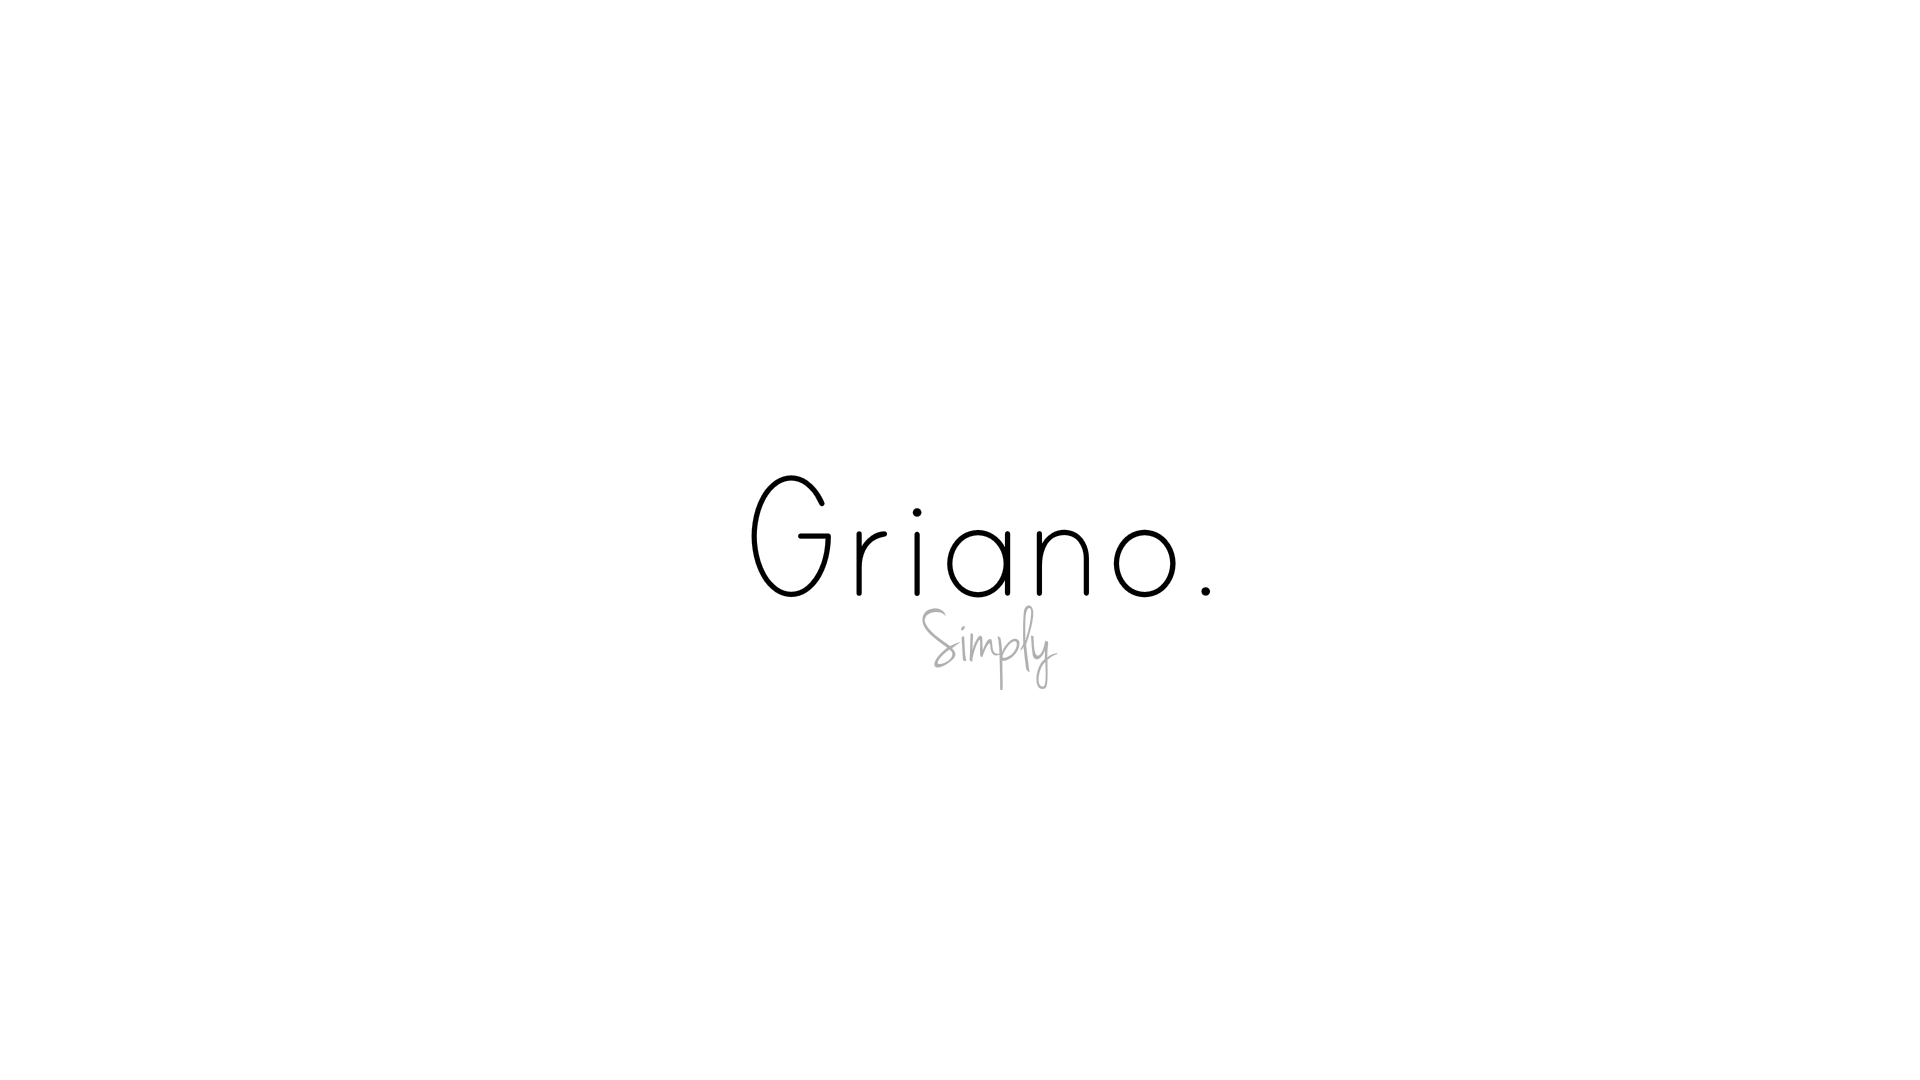 Griano